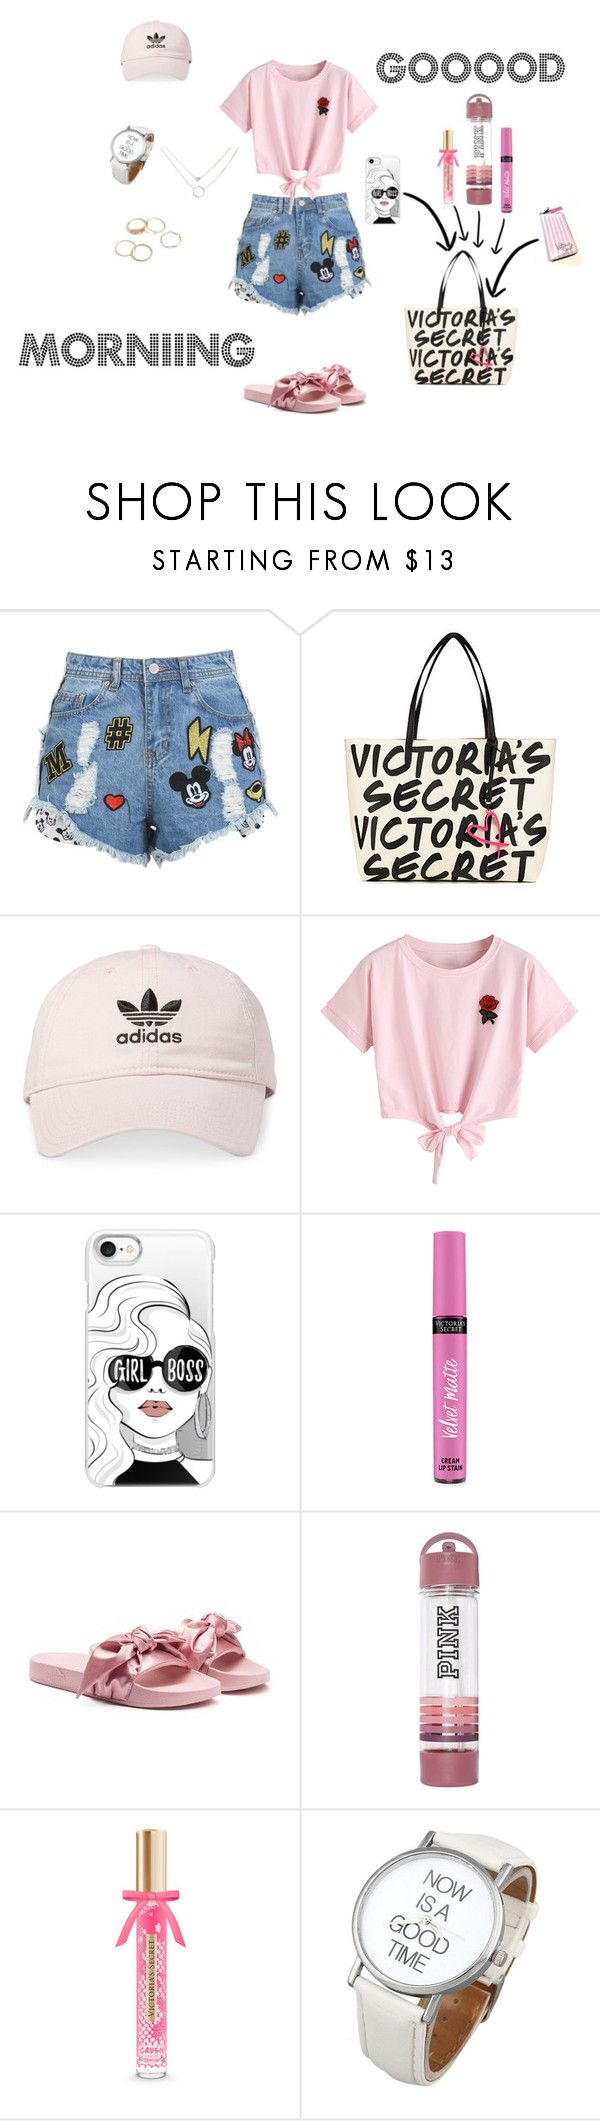 """GOOOOD MORNIING"" by natalyholly on Polyvore featuring Disney Stars Studios, Victoria's Secret, adidas, WithChic, Casetify and Puma"